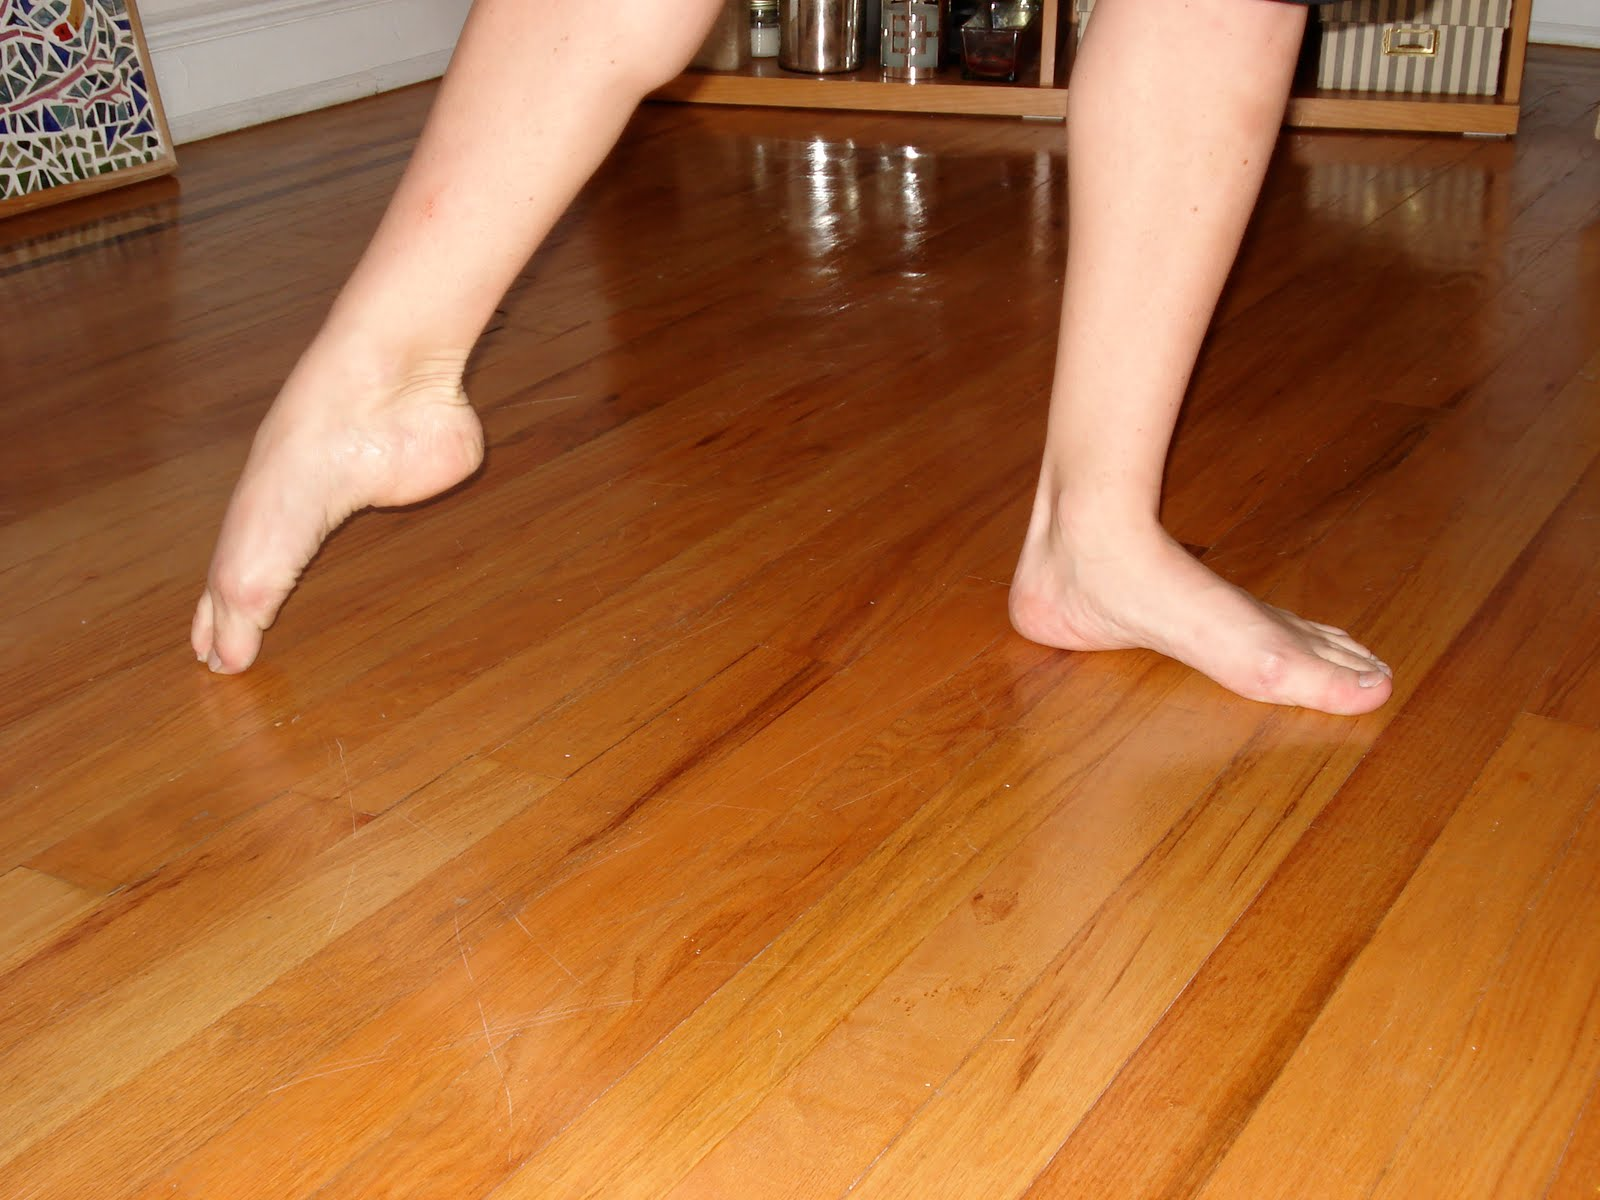 Her Calves Muscle Legs Only Legs And Calves  1 -7199